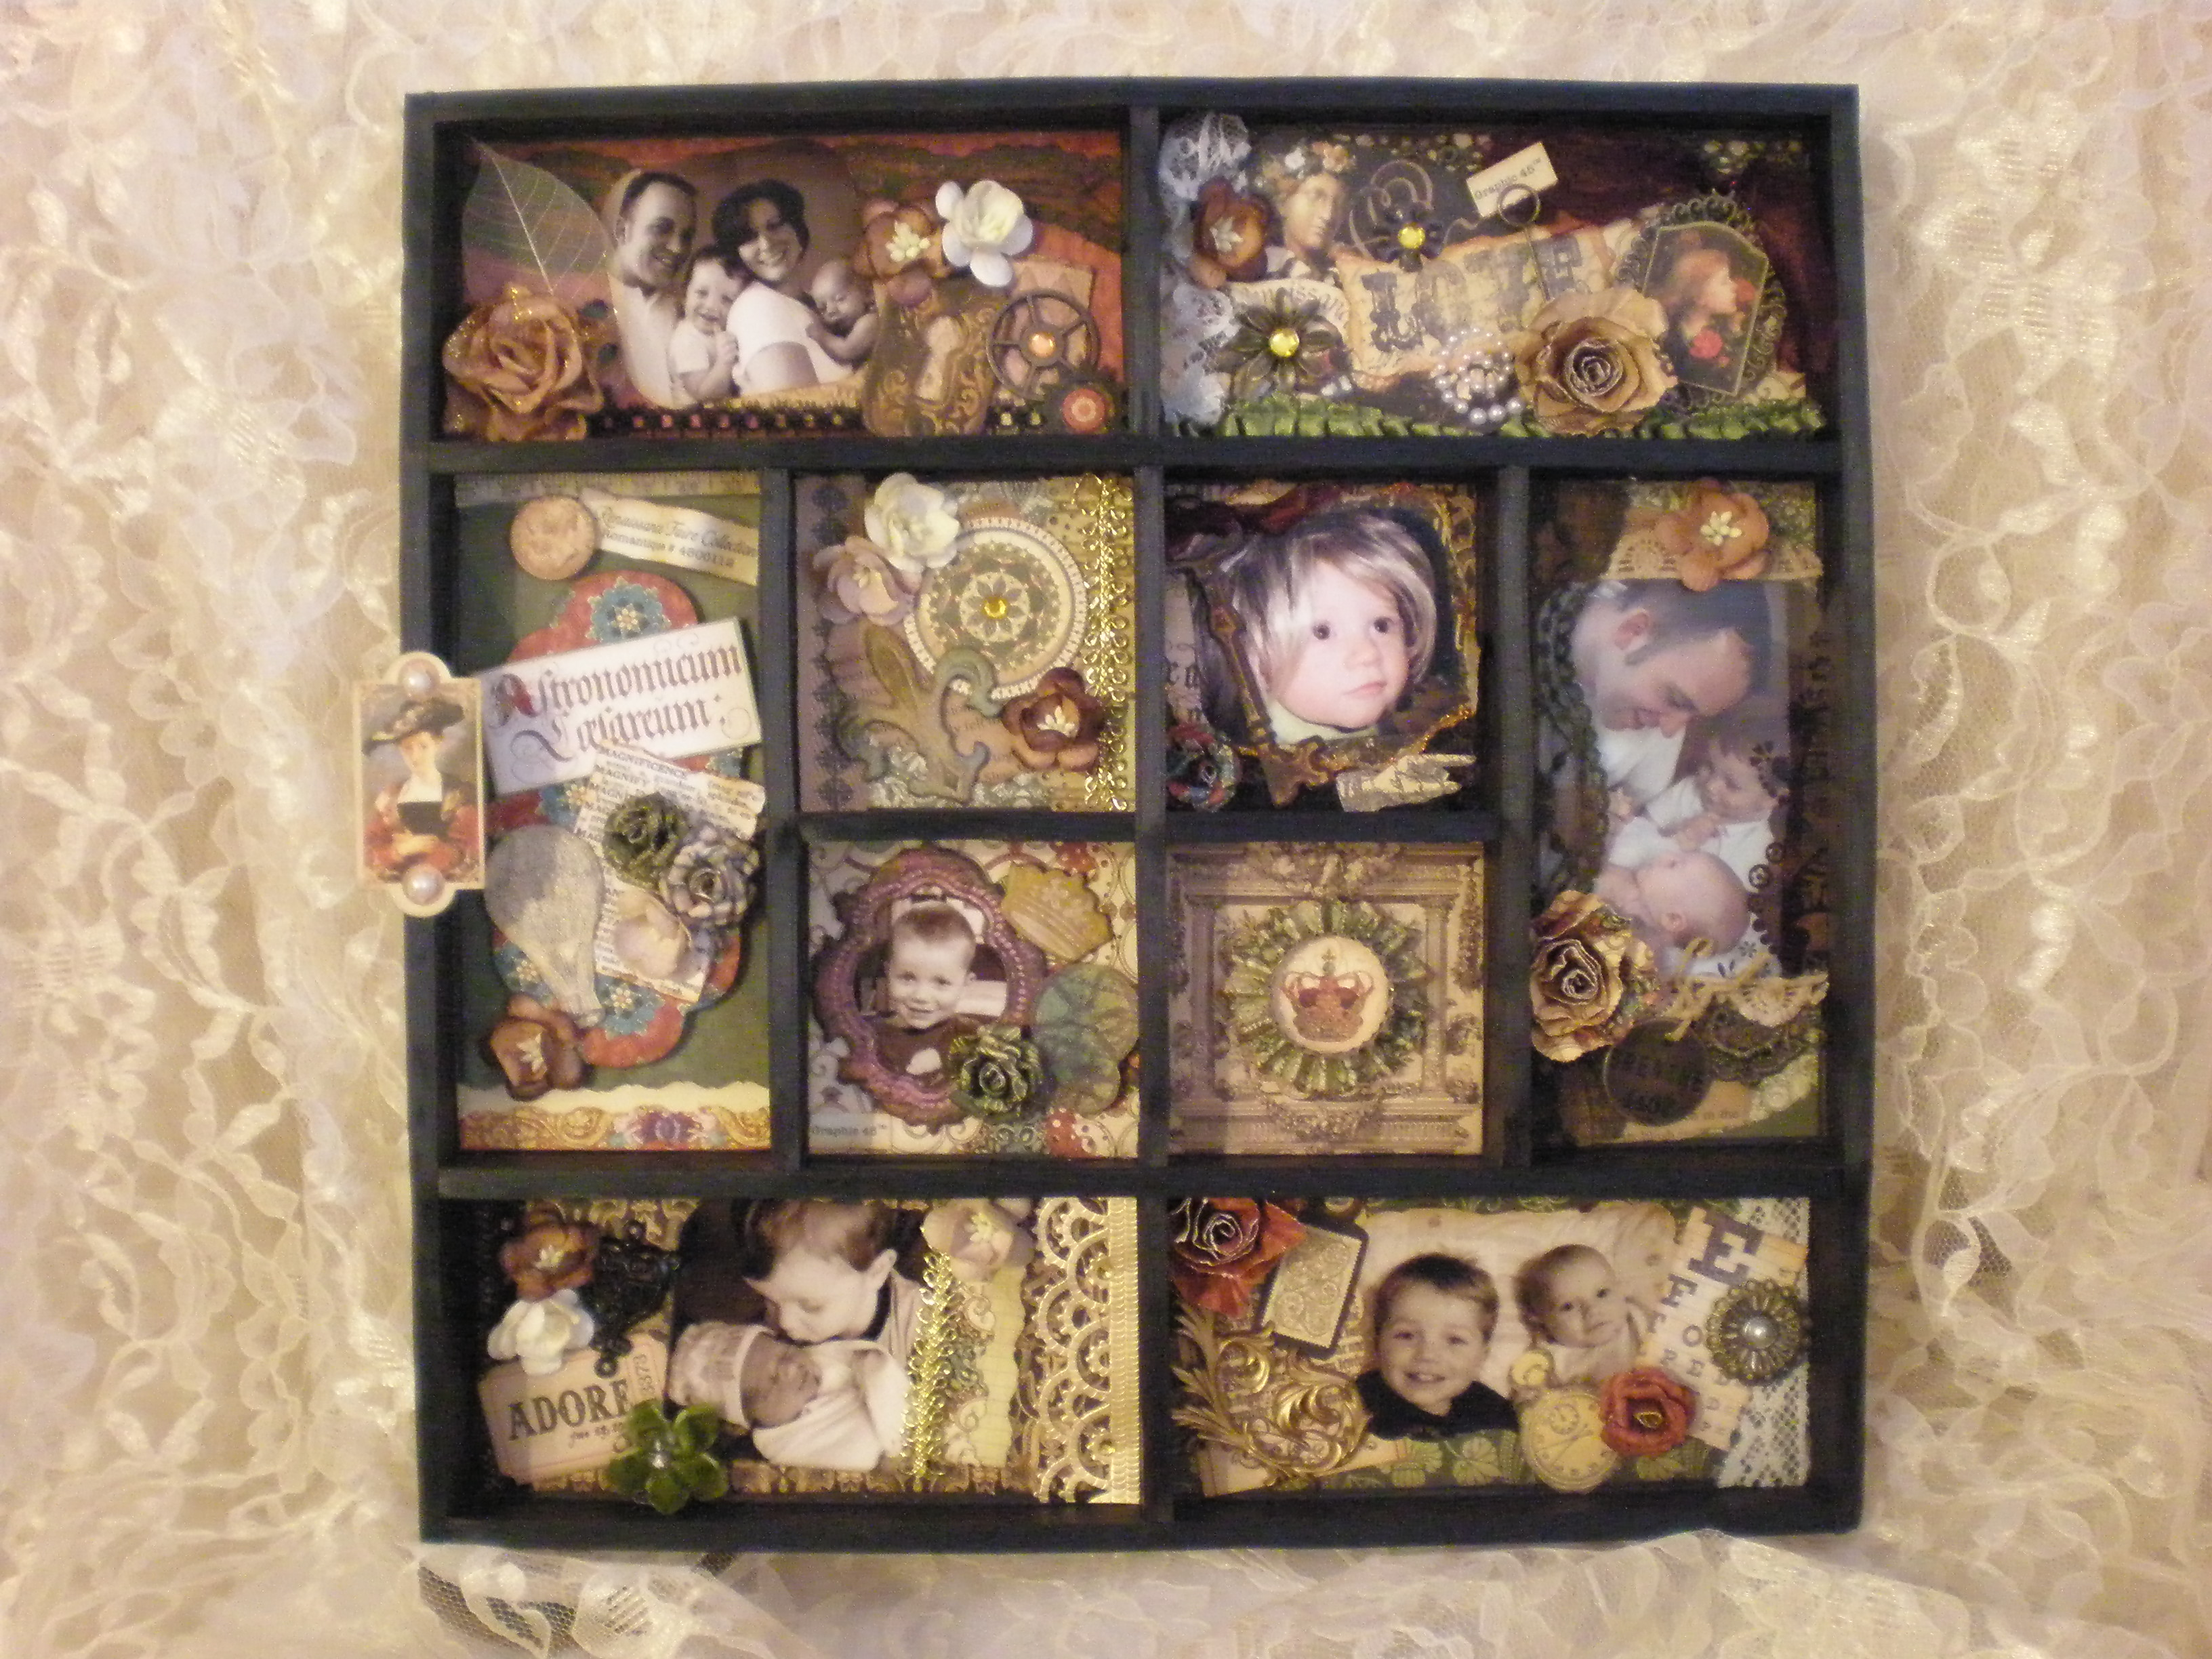 Pleasing Here It Graphic Renaissance Faire Altered Shadow Box What Is A Shadow Box Card What Is A Wood Shadow Box photos What Is A Shadow Box